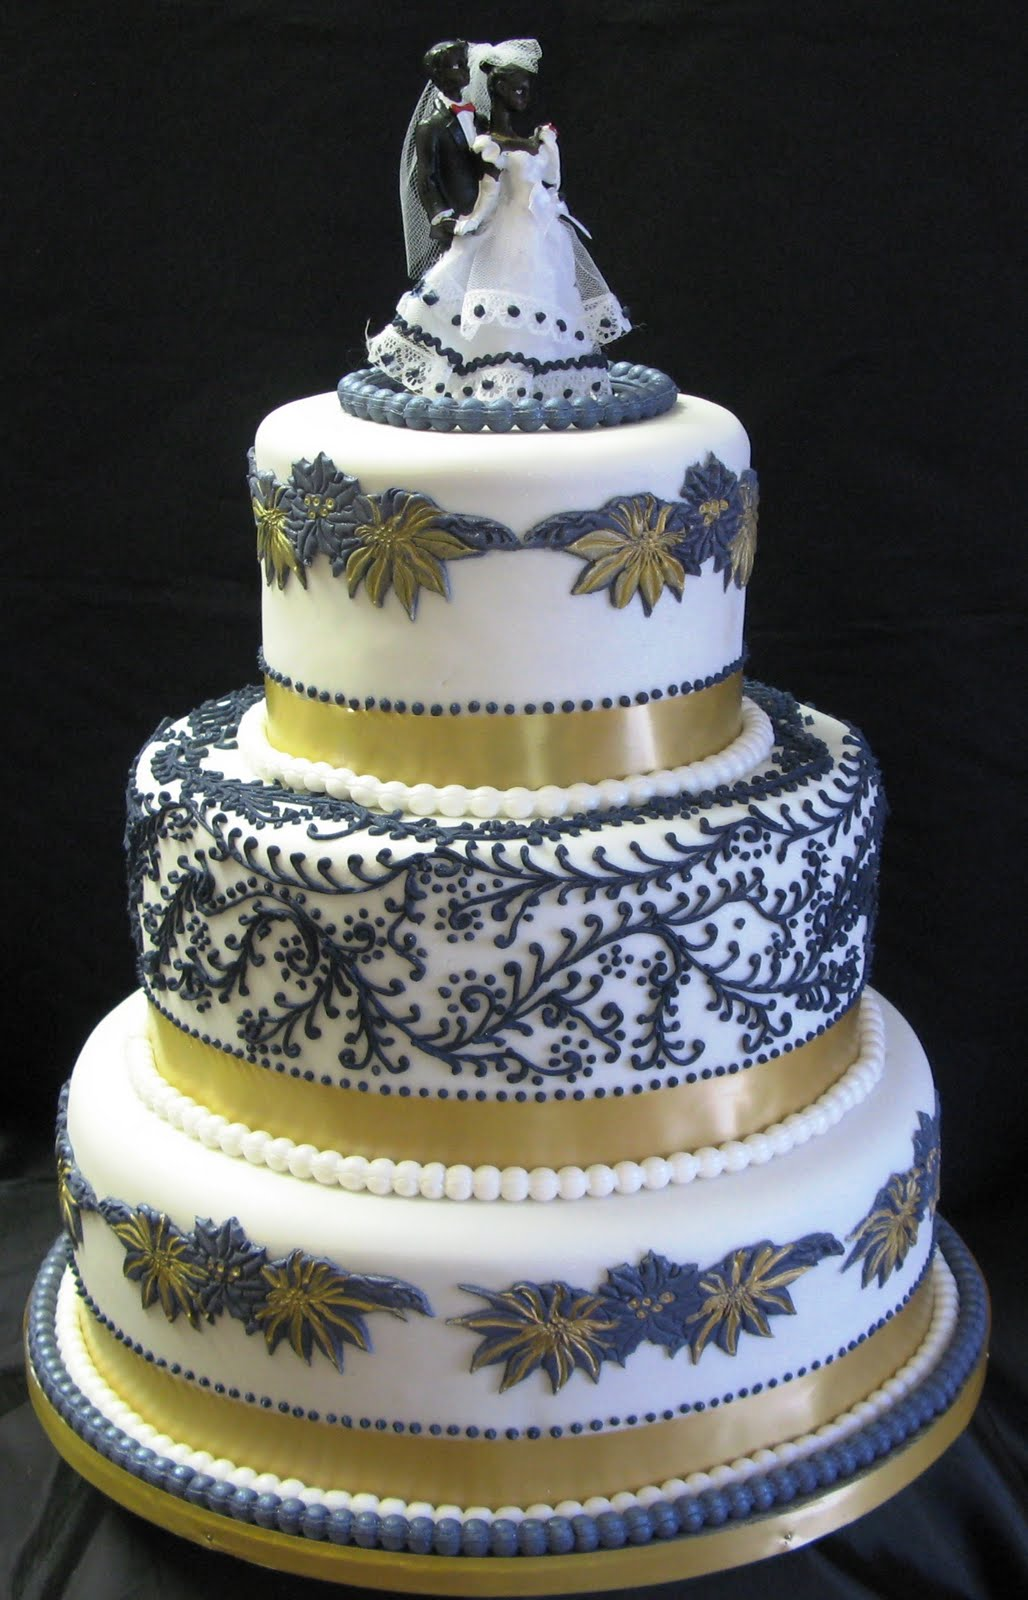 Sugarcraft by Soni Floral Three Tier Wedding Cake & Park